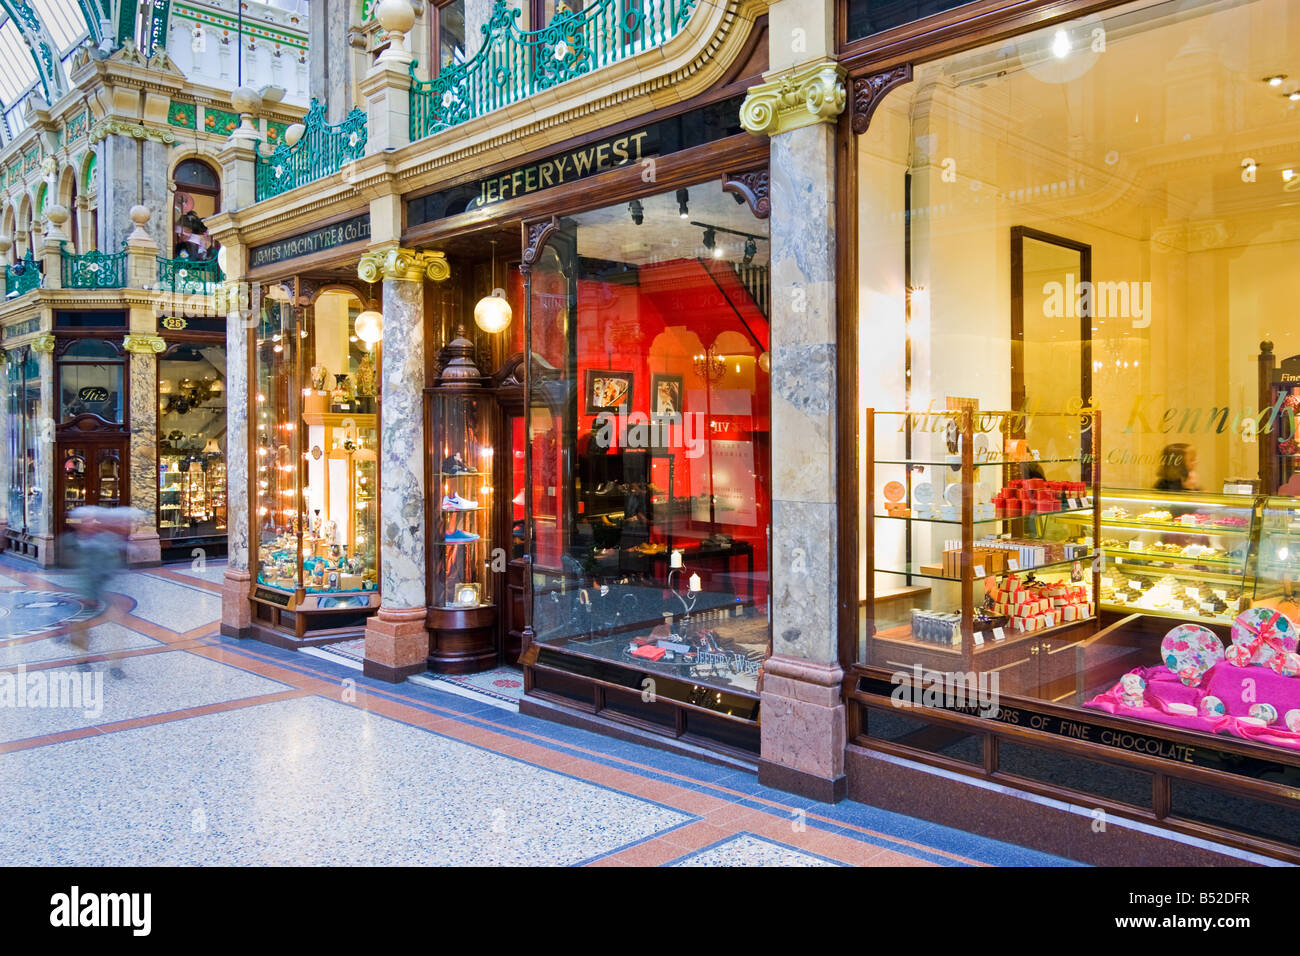 Shopping Mall, UK - Luxury shops and stores in Victoria Quarter arcade, Leeds, Yorkshire - Stock Image